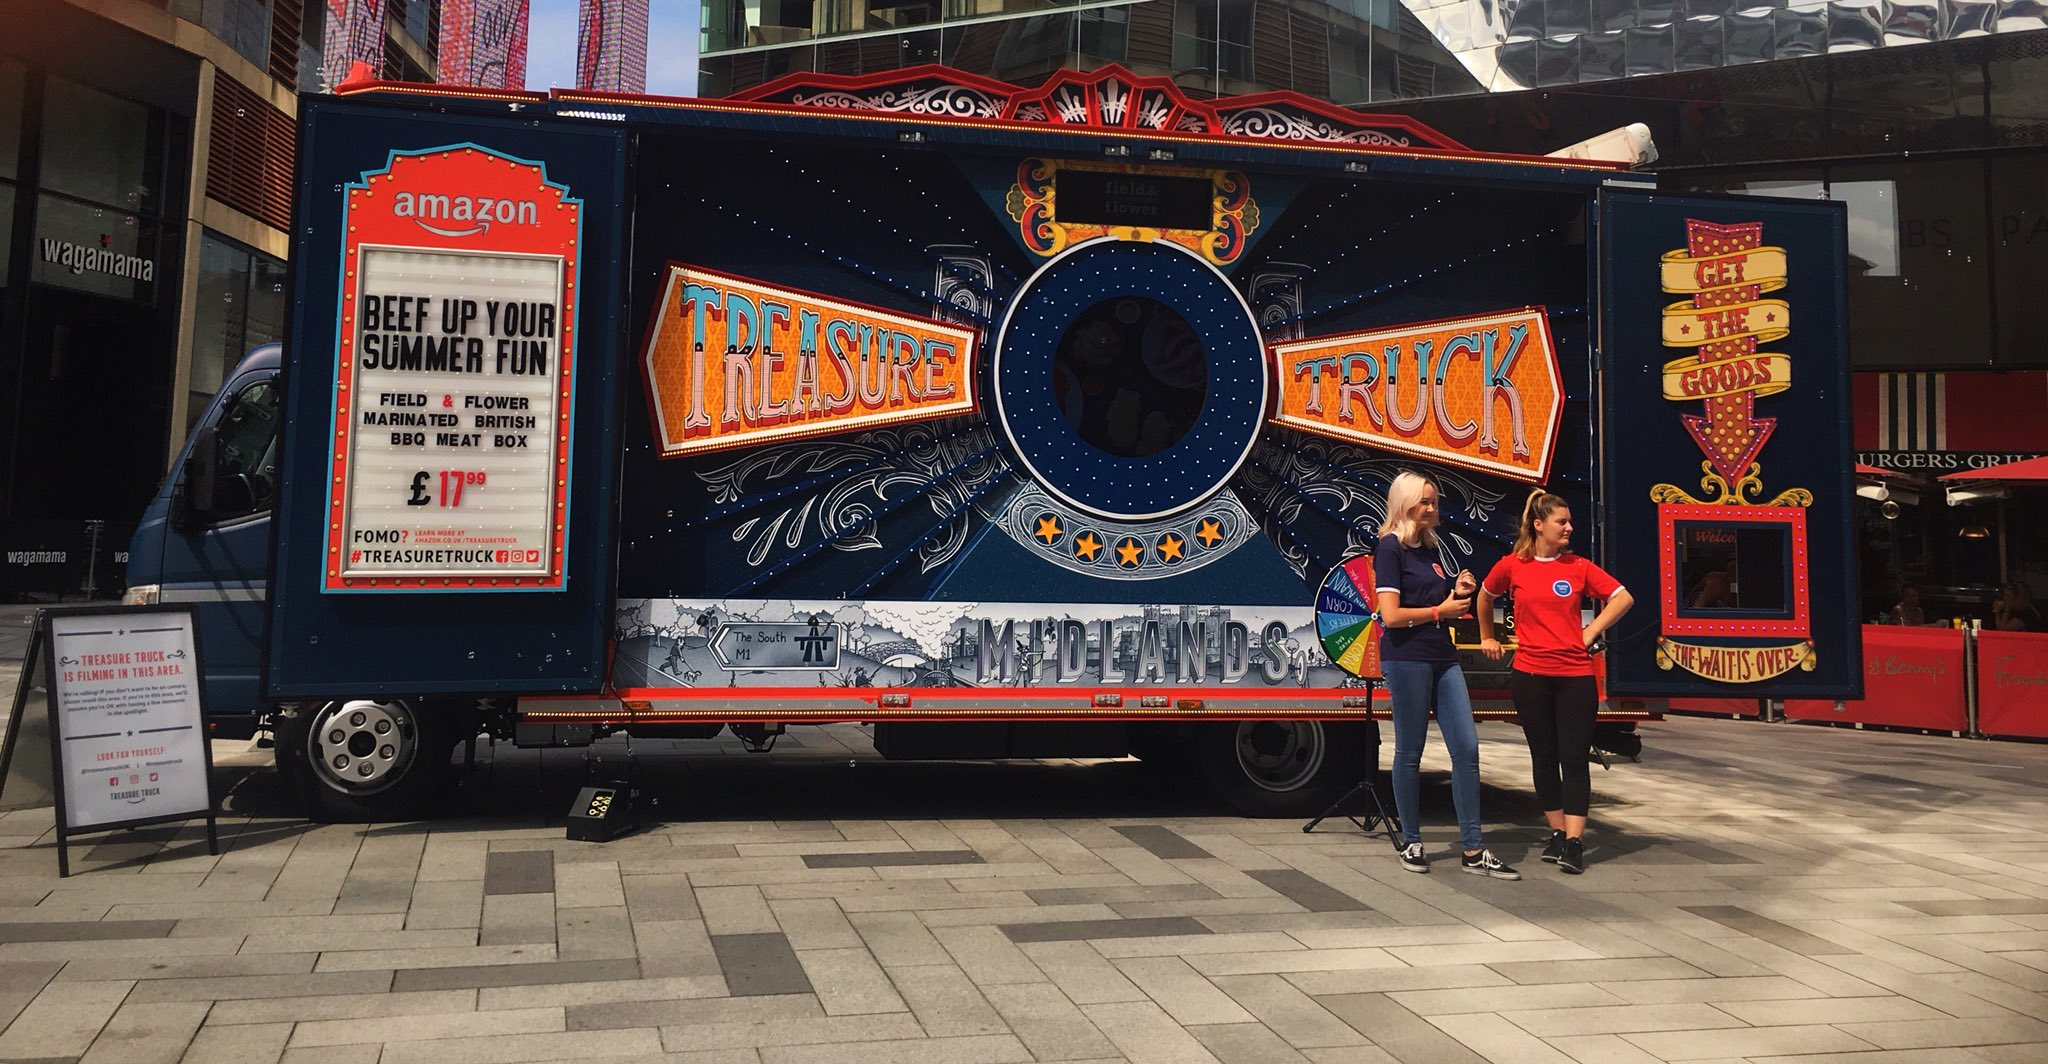 It's a great day to bag yourself a bargain with the @amazon #TreasureTruck @highcross #StPetersSquare today 10-12pm #discounts #prizes #offers https://t.co/4wKlOc8Zcs